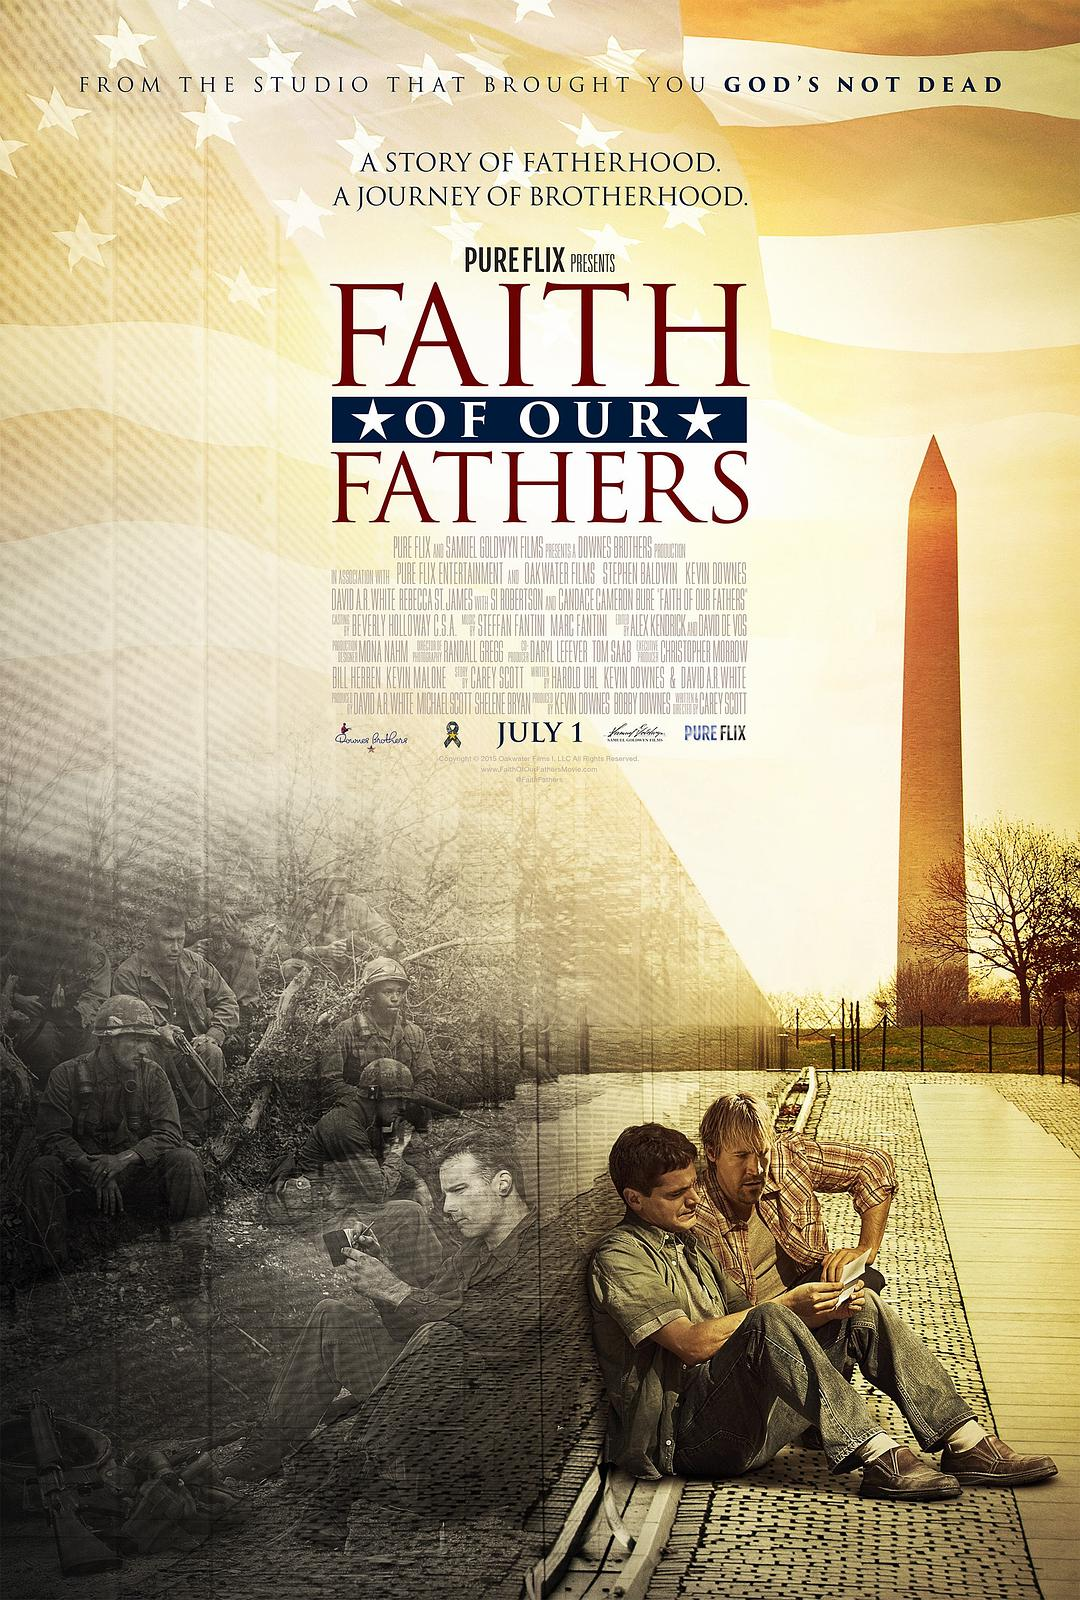 悠悠MP4_MP4电影下载_先贤之信 Faith.of.Our.Fathers.2015.1080p.AMZN.WEBRip.DDP5.1.x264-ABM 6.48GB